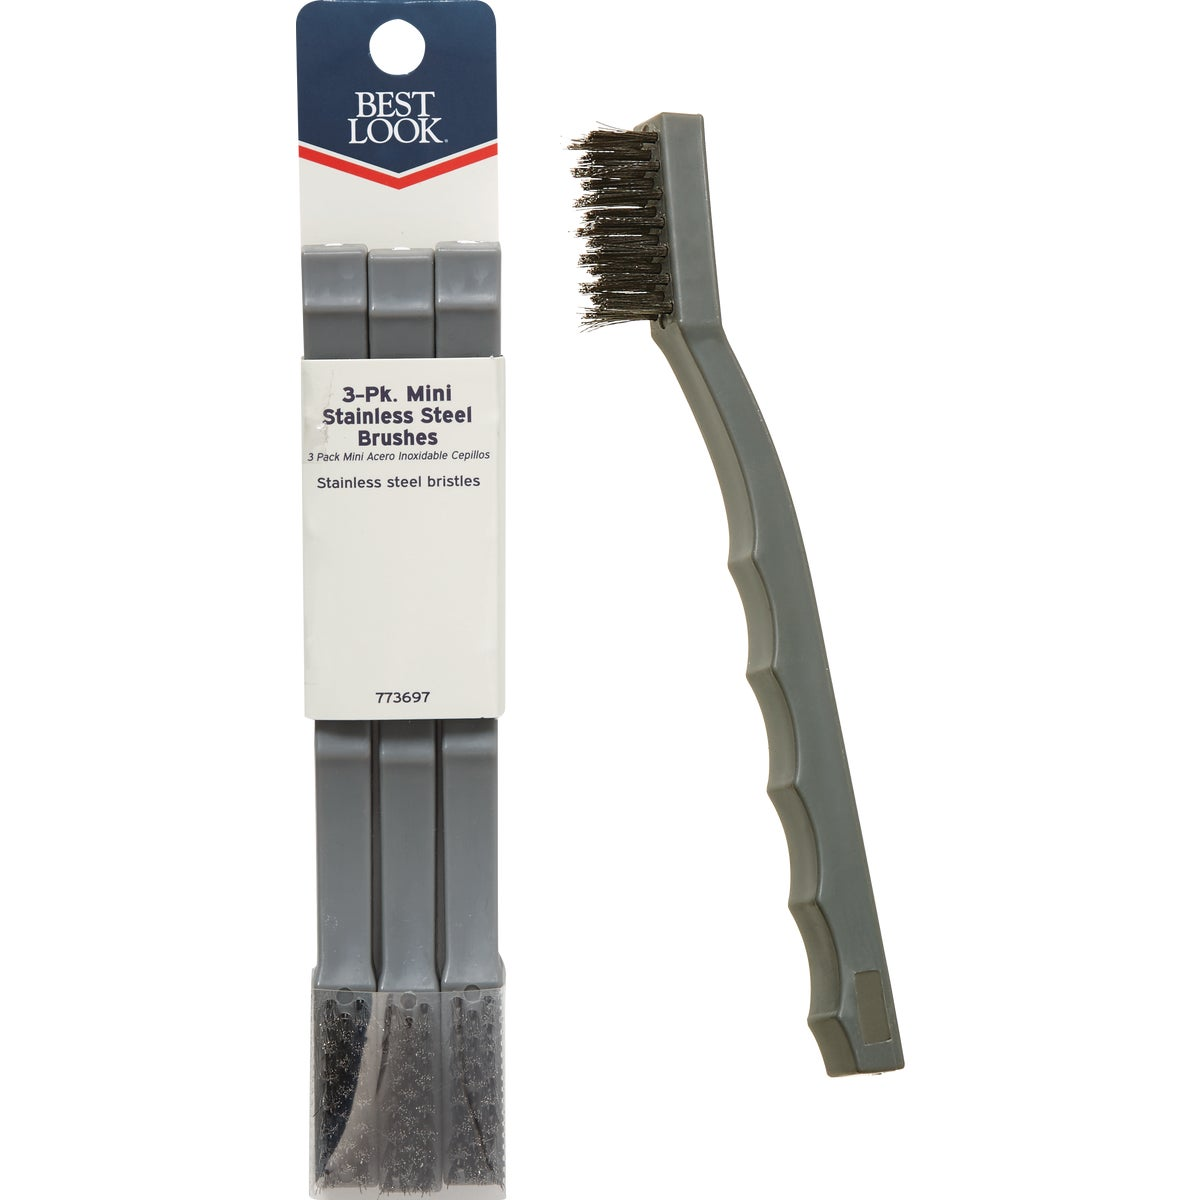 3PK MINI SS BRUSH - 46650 by Hyde Mfg Co